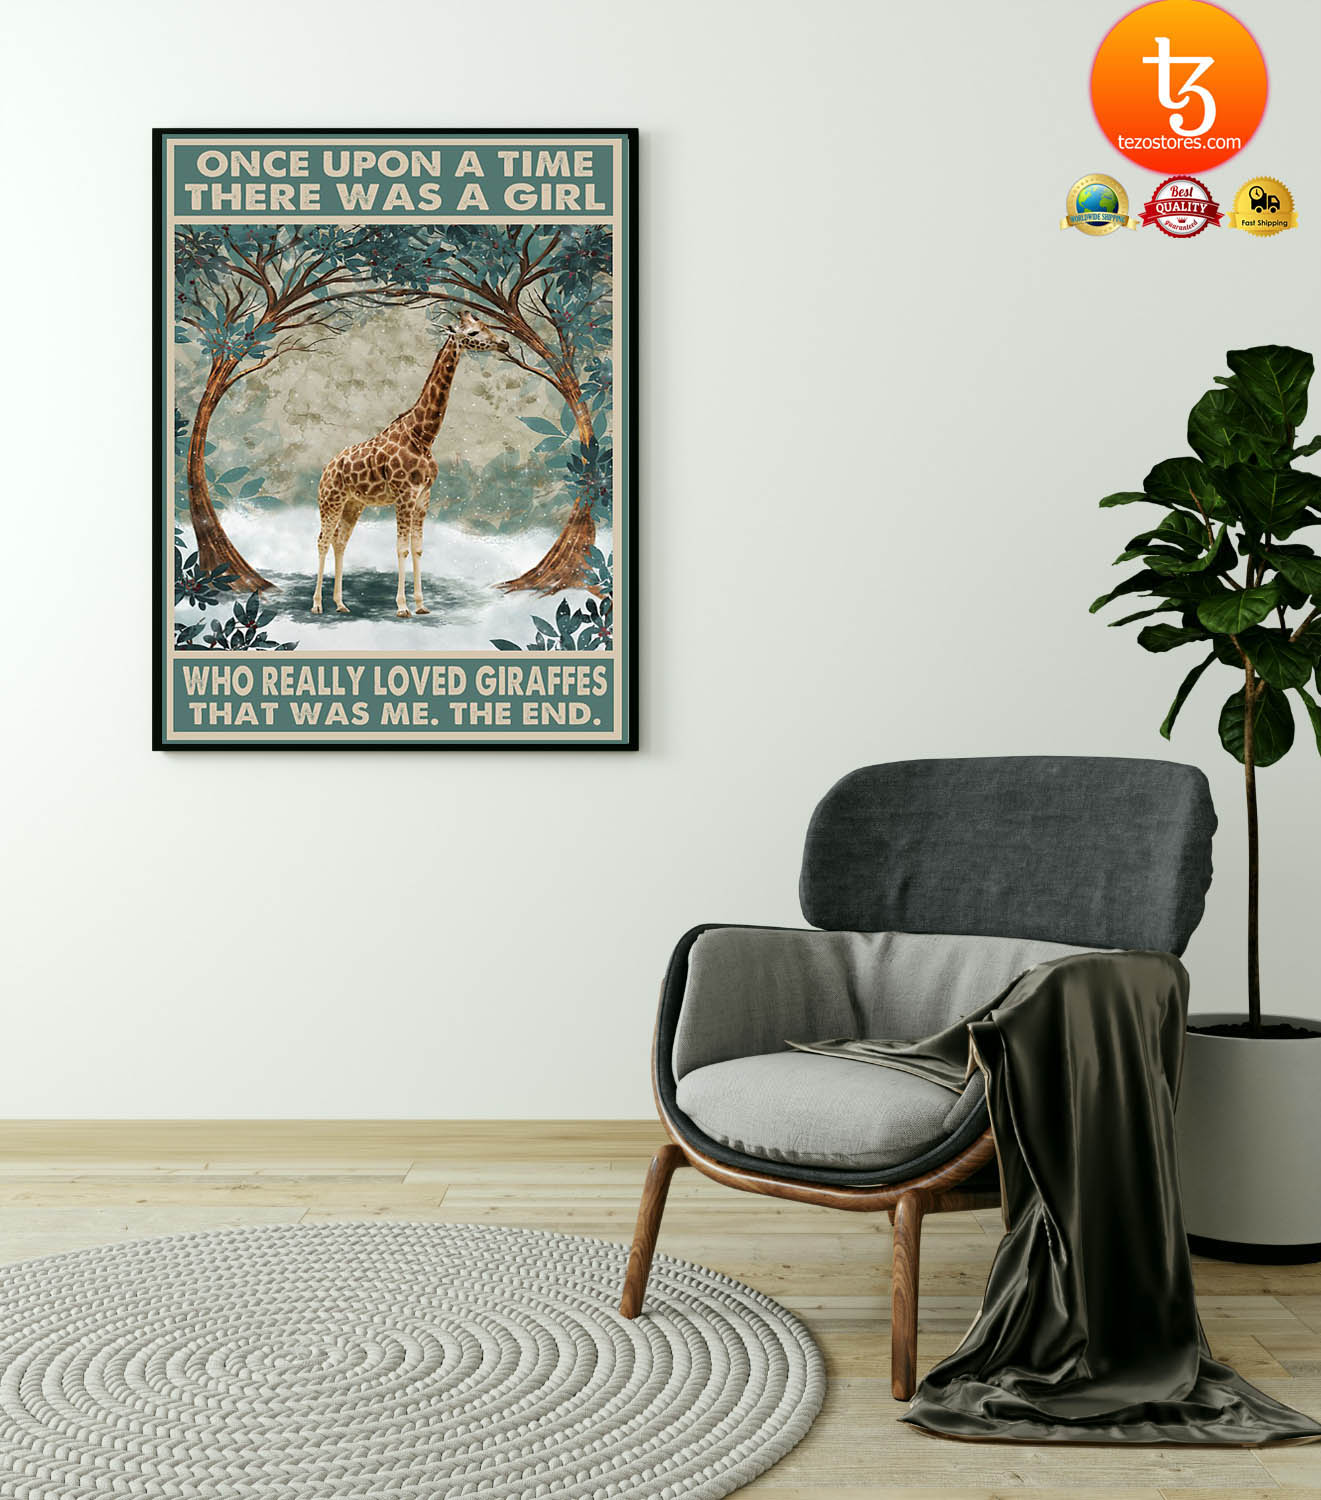 Once upon a time there was a girl who really loved giraffes poster 19